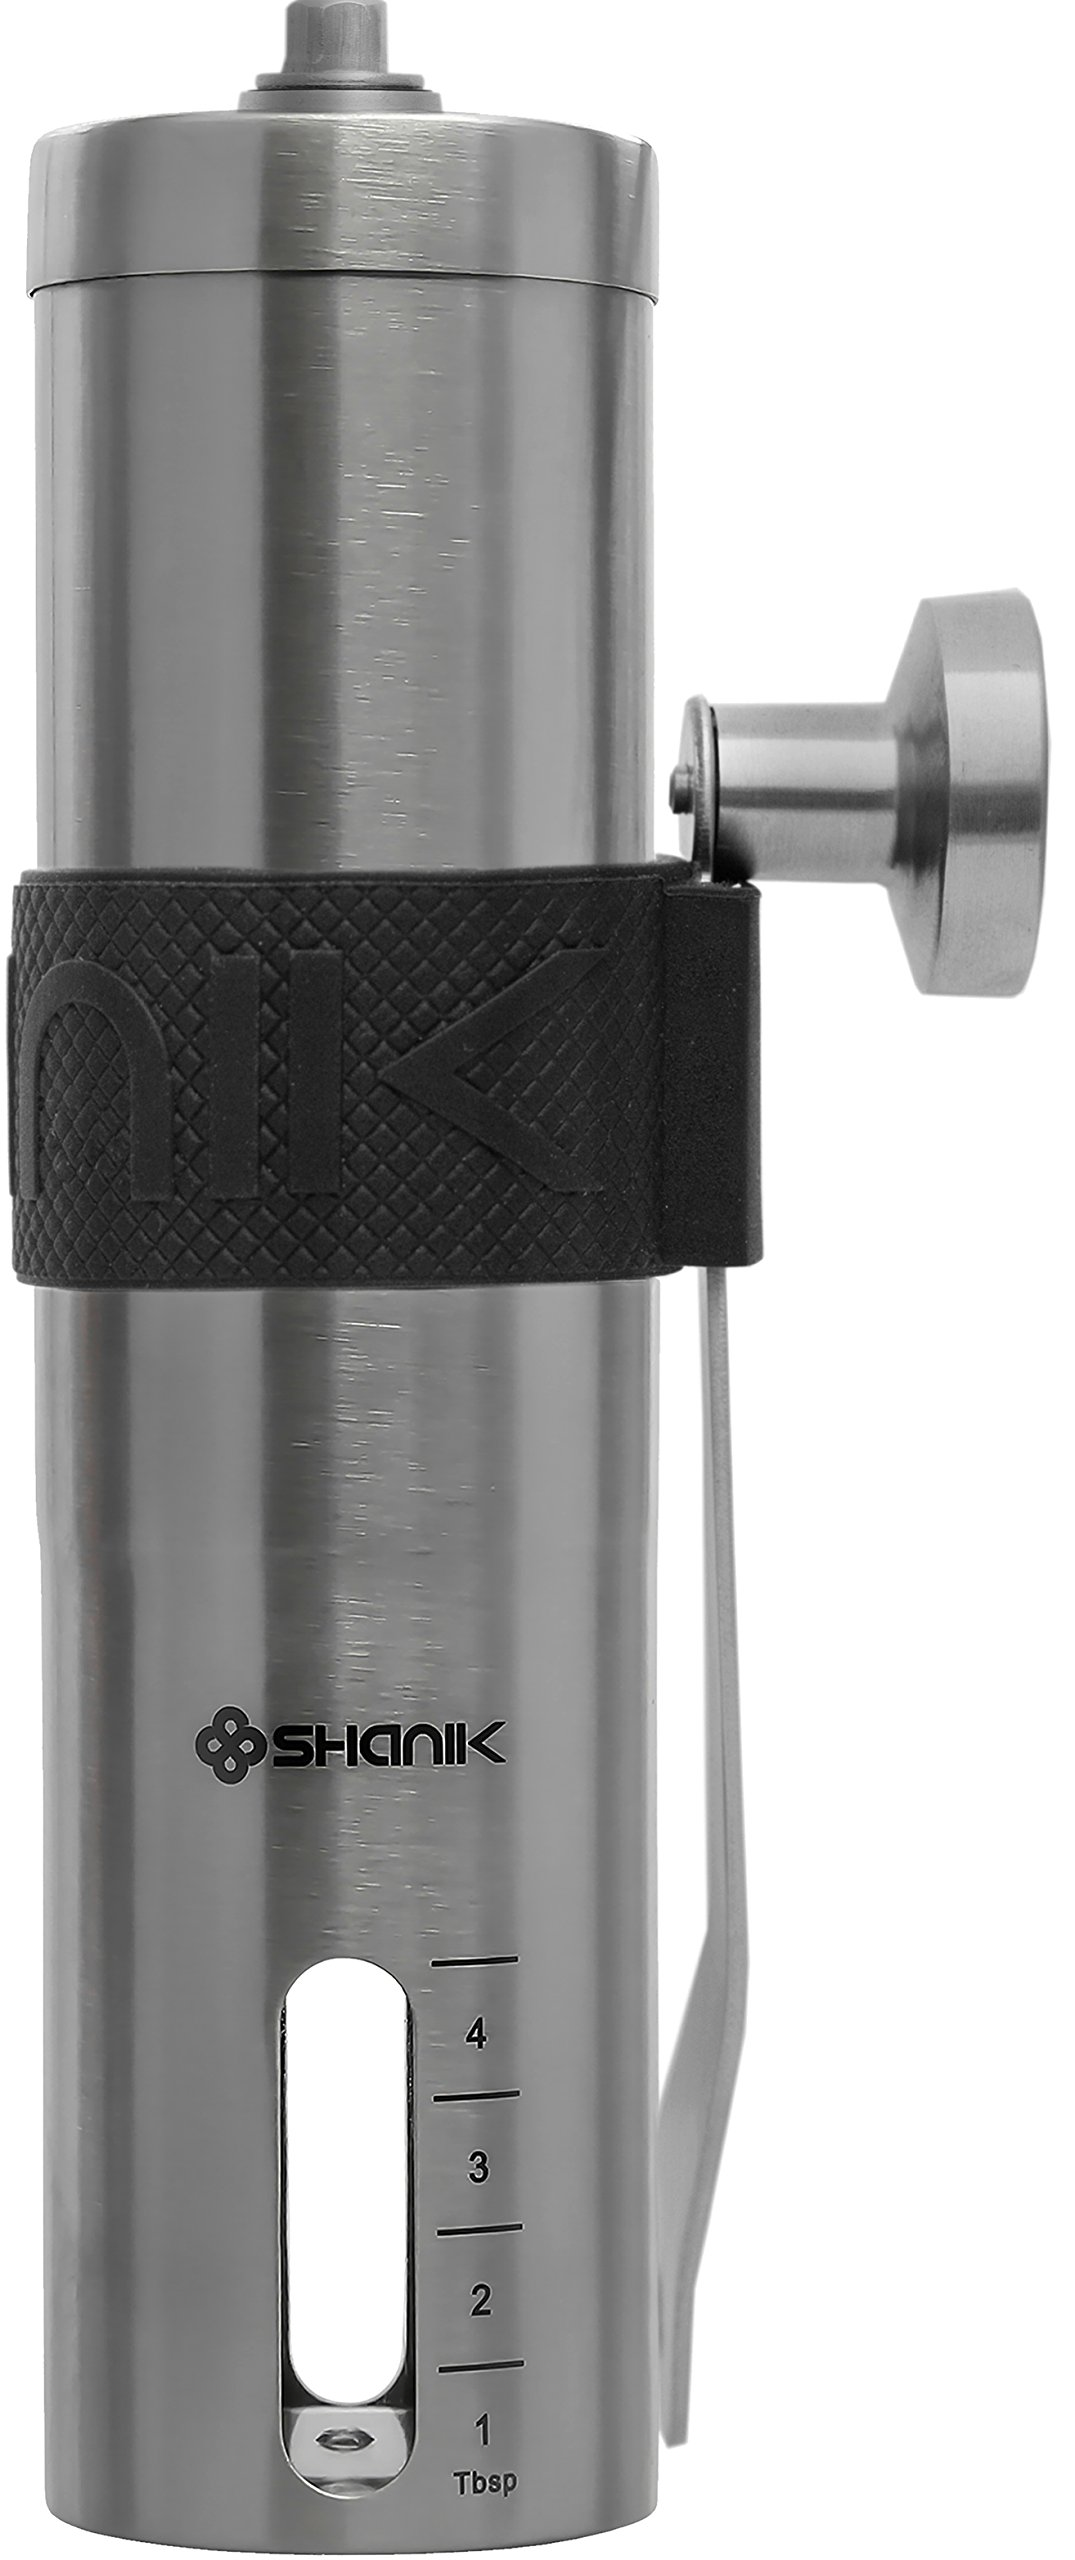 Premium Quality Stainless Steel Manual Coffee Grinder - Portable Burr Coffee Grinder - Conical Ceramic Burr for Precision Brewing - Silicone Lid to Keep Coffee in Container - (Pack of 2) by Shanik